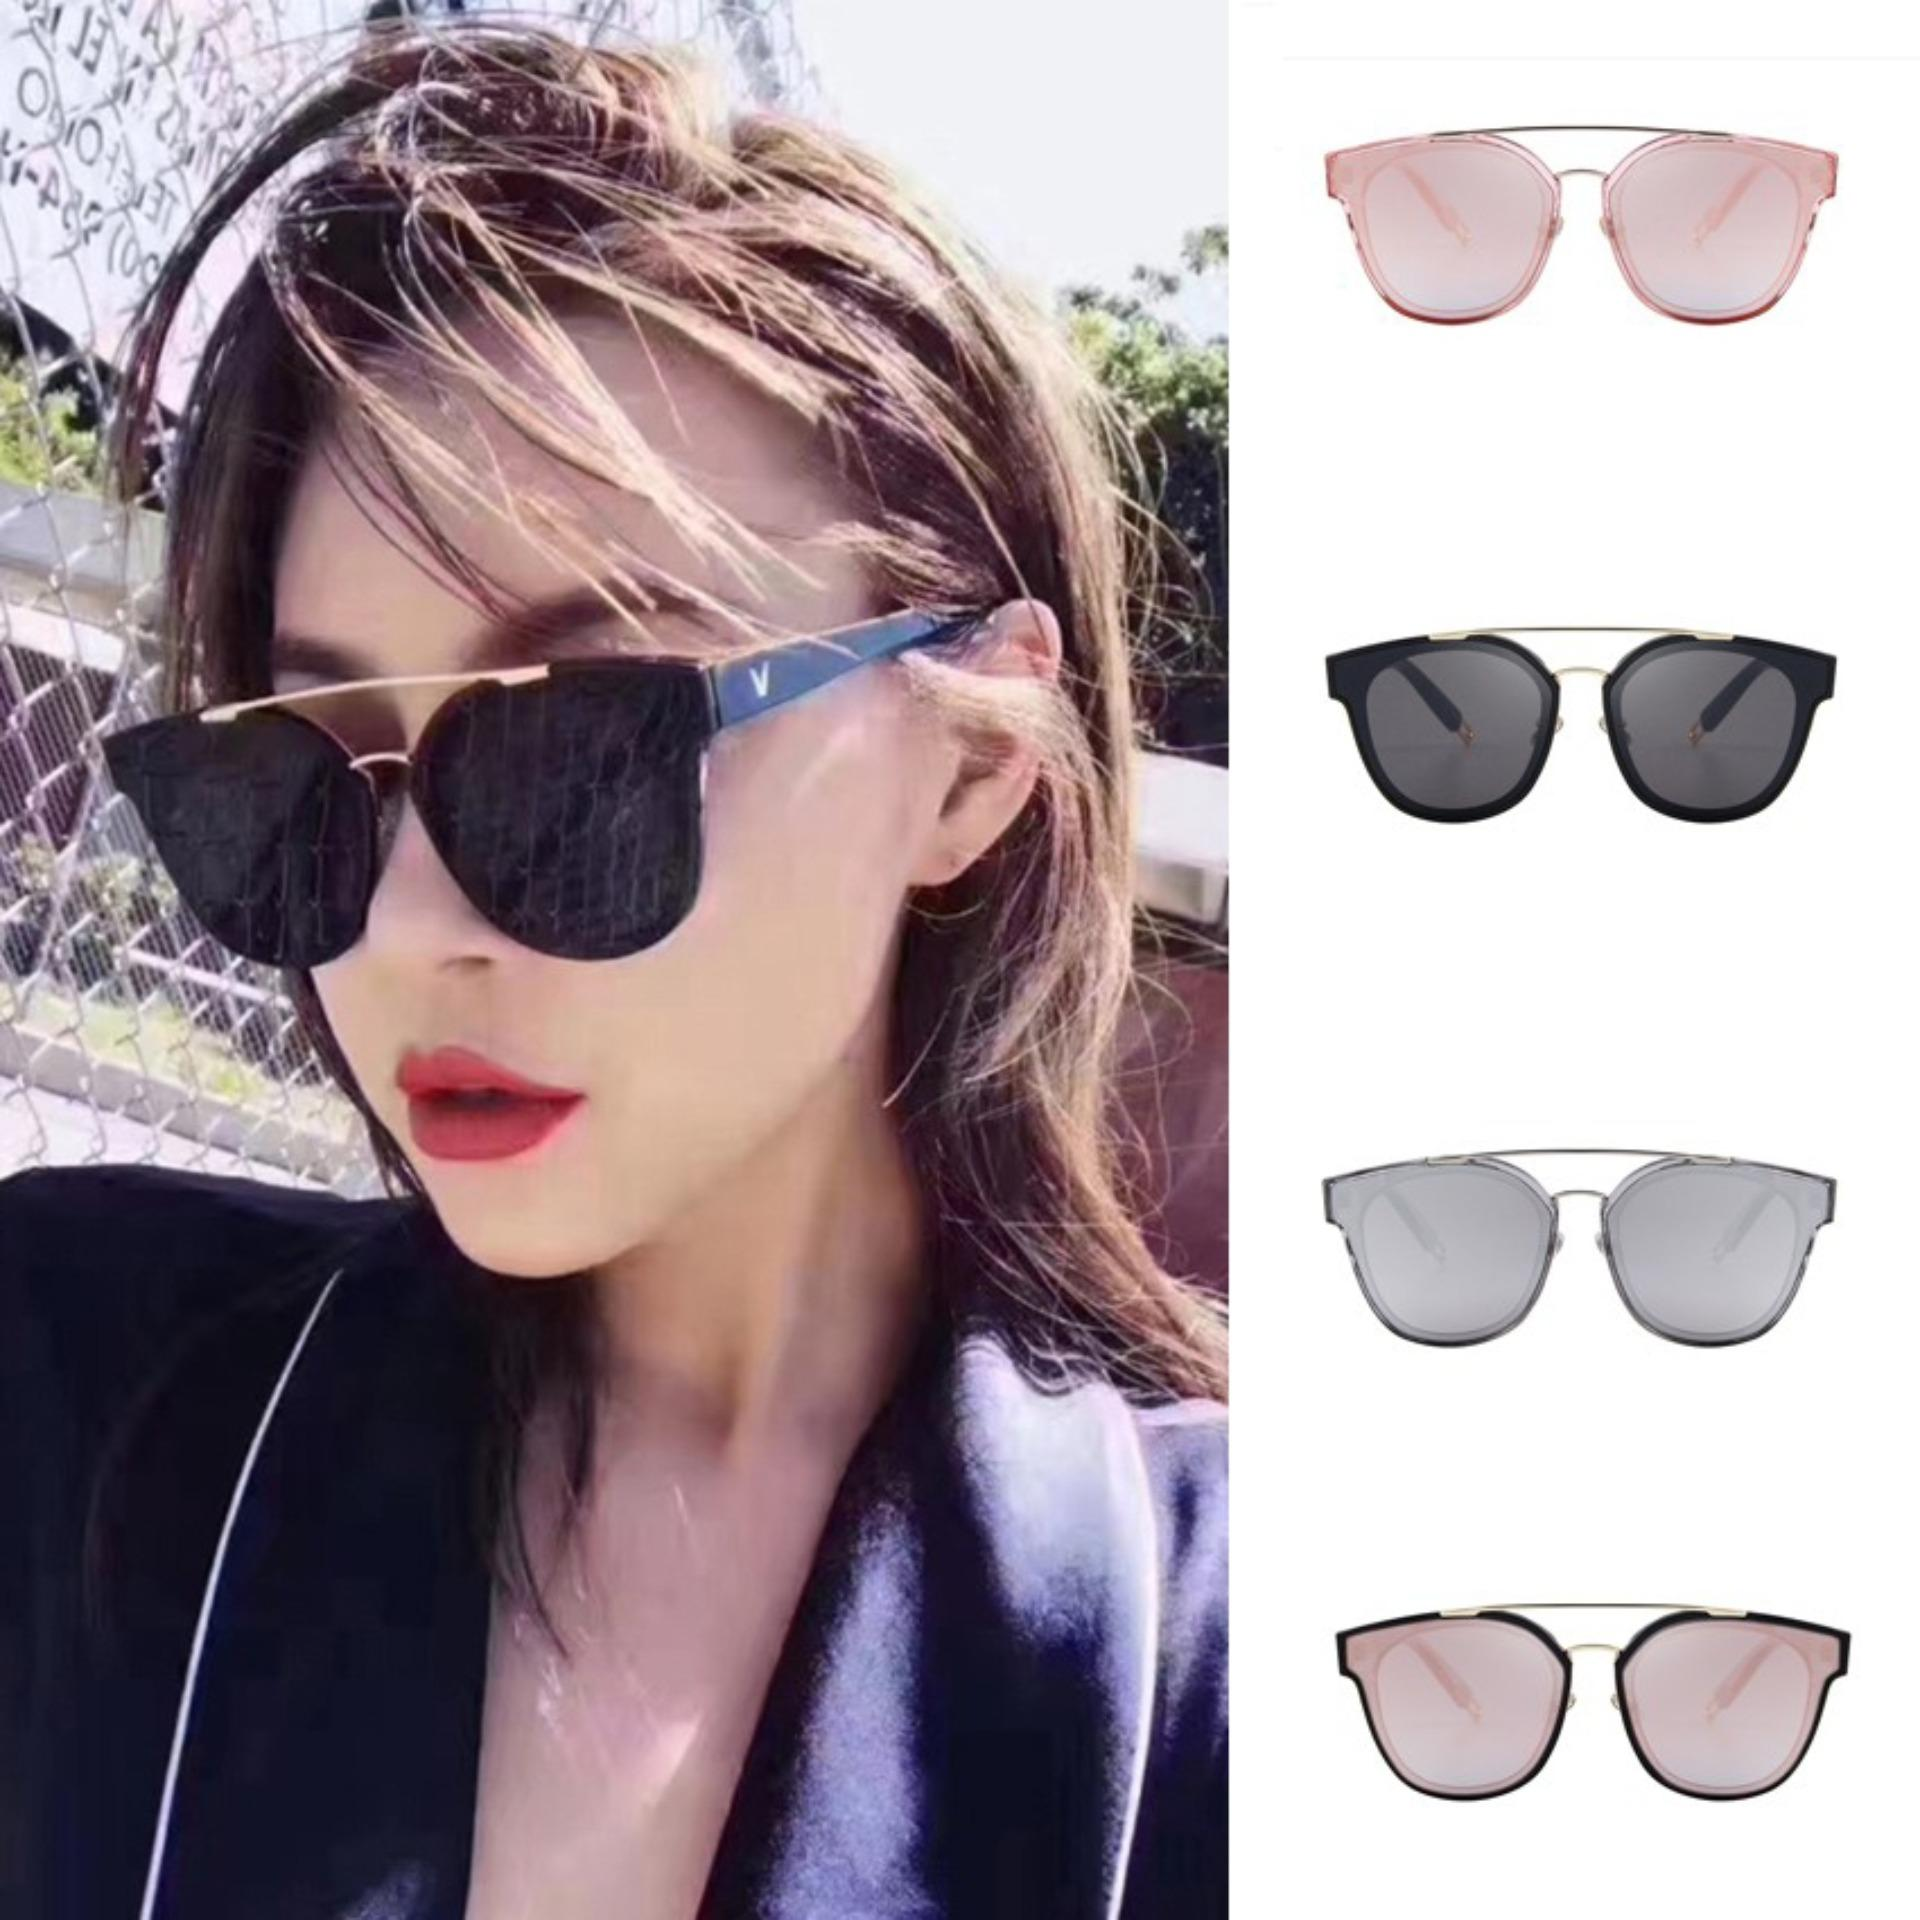 Timely - 2018 New Cat Eye Gentle Luxury Mn5023 - Kacamata Pria Dan Wanita - Fashion - Branded By Timely Indonesia.